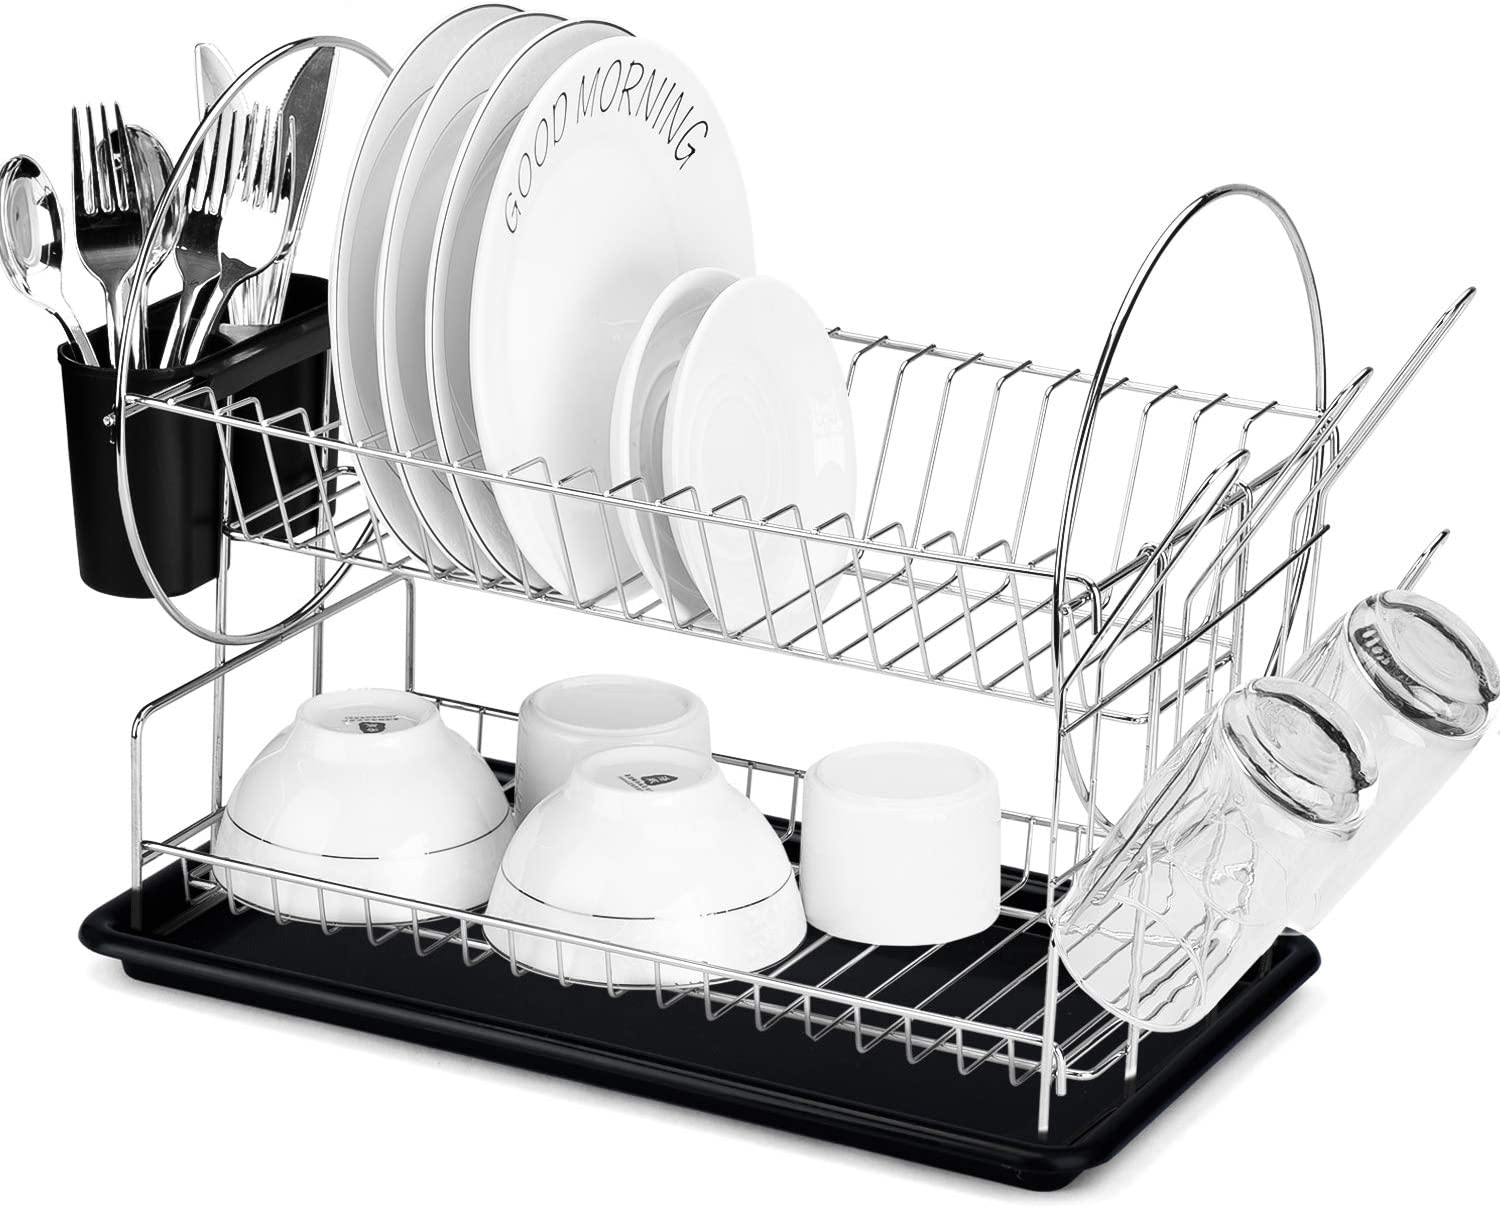 Syntrific Dish Drying Rack Ranking TOP16 2 Tier Holder Utensil Sales for sale with